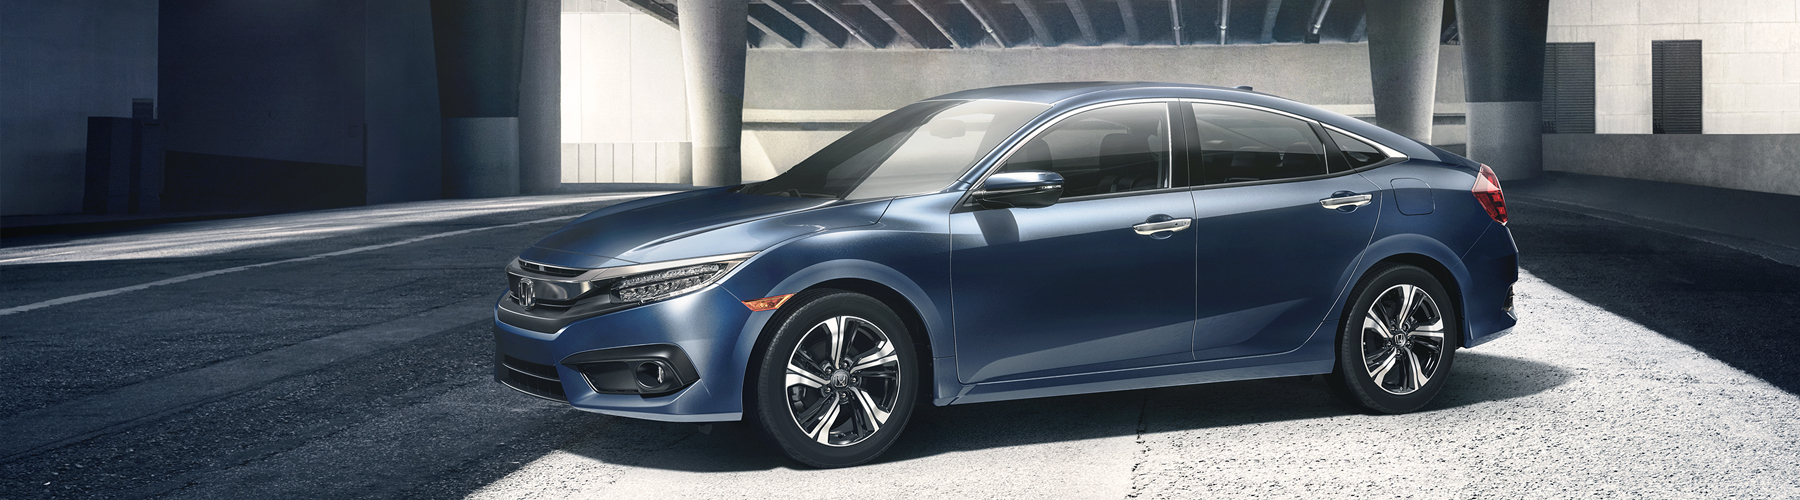 2017 Honda Civic Sedan Hampton Roads Honda Dealers